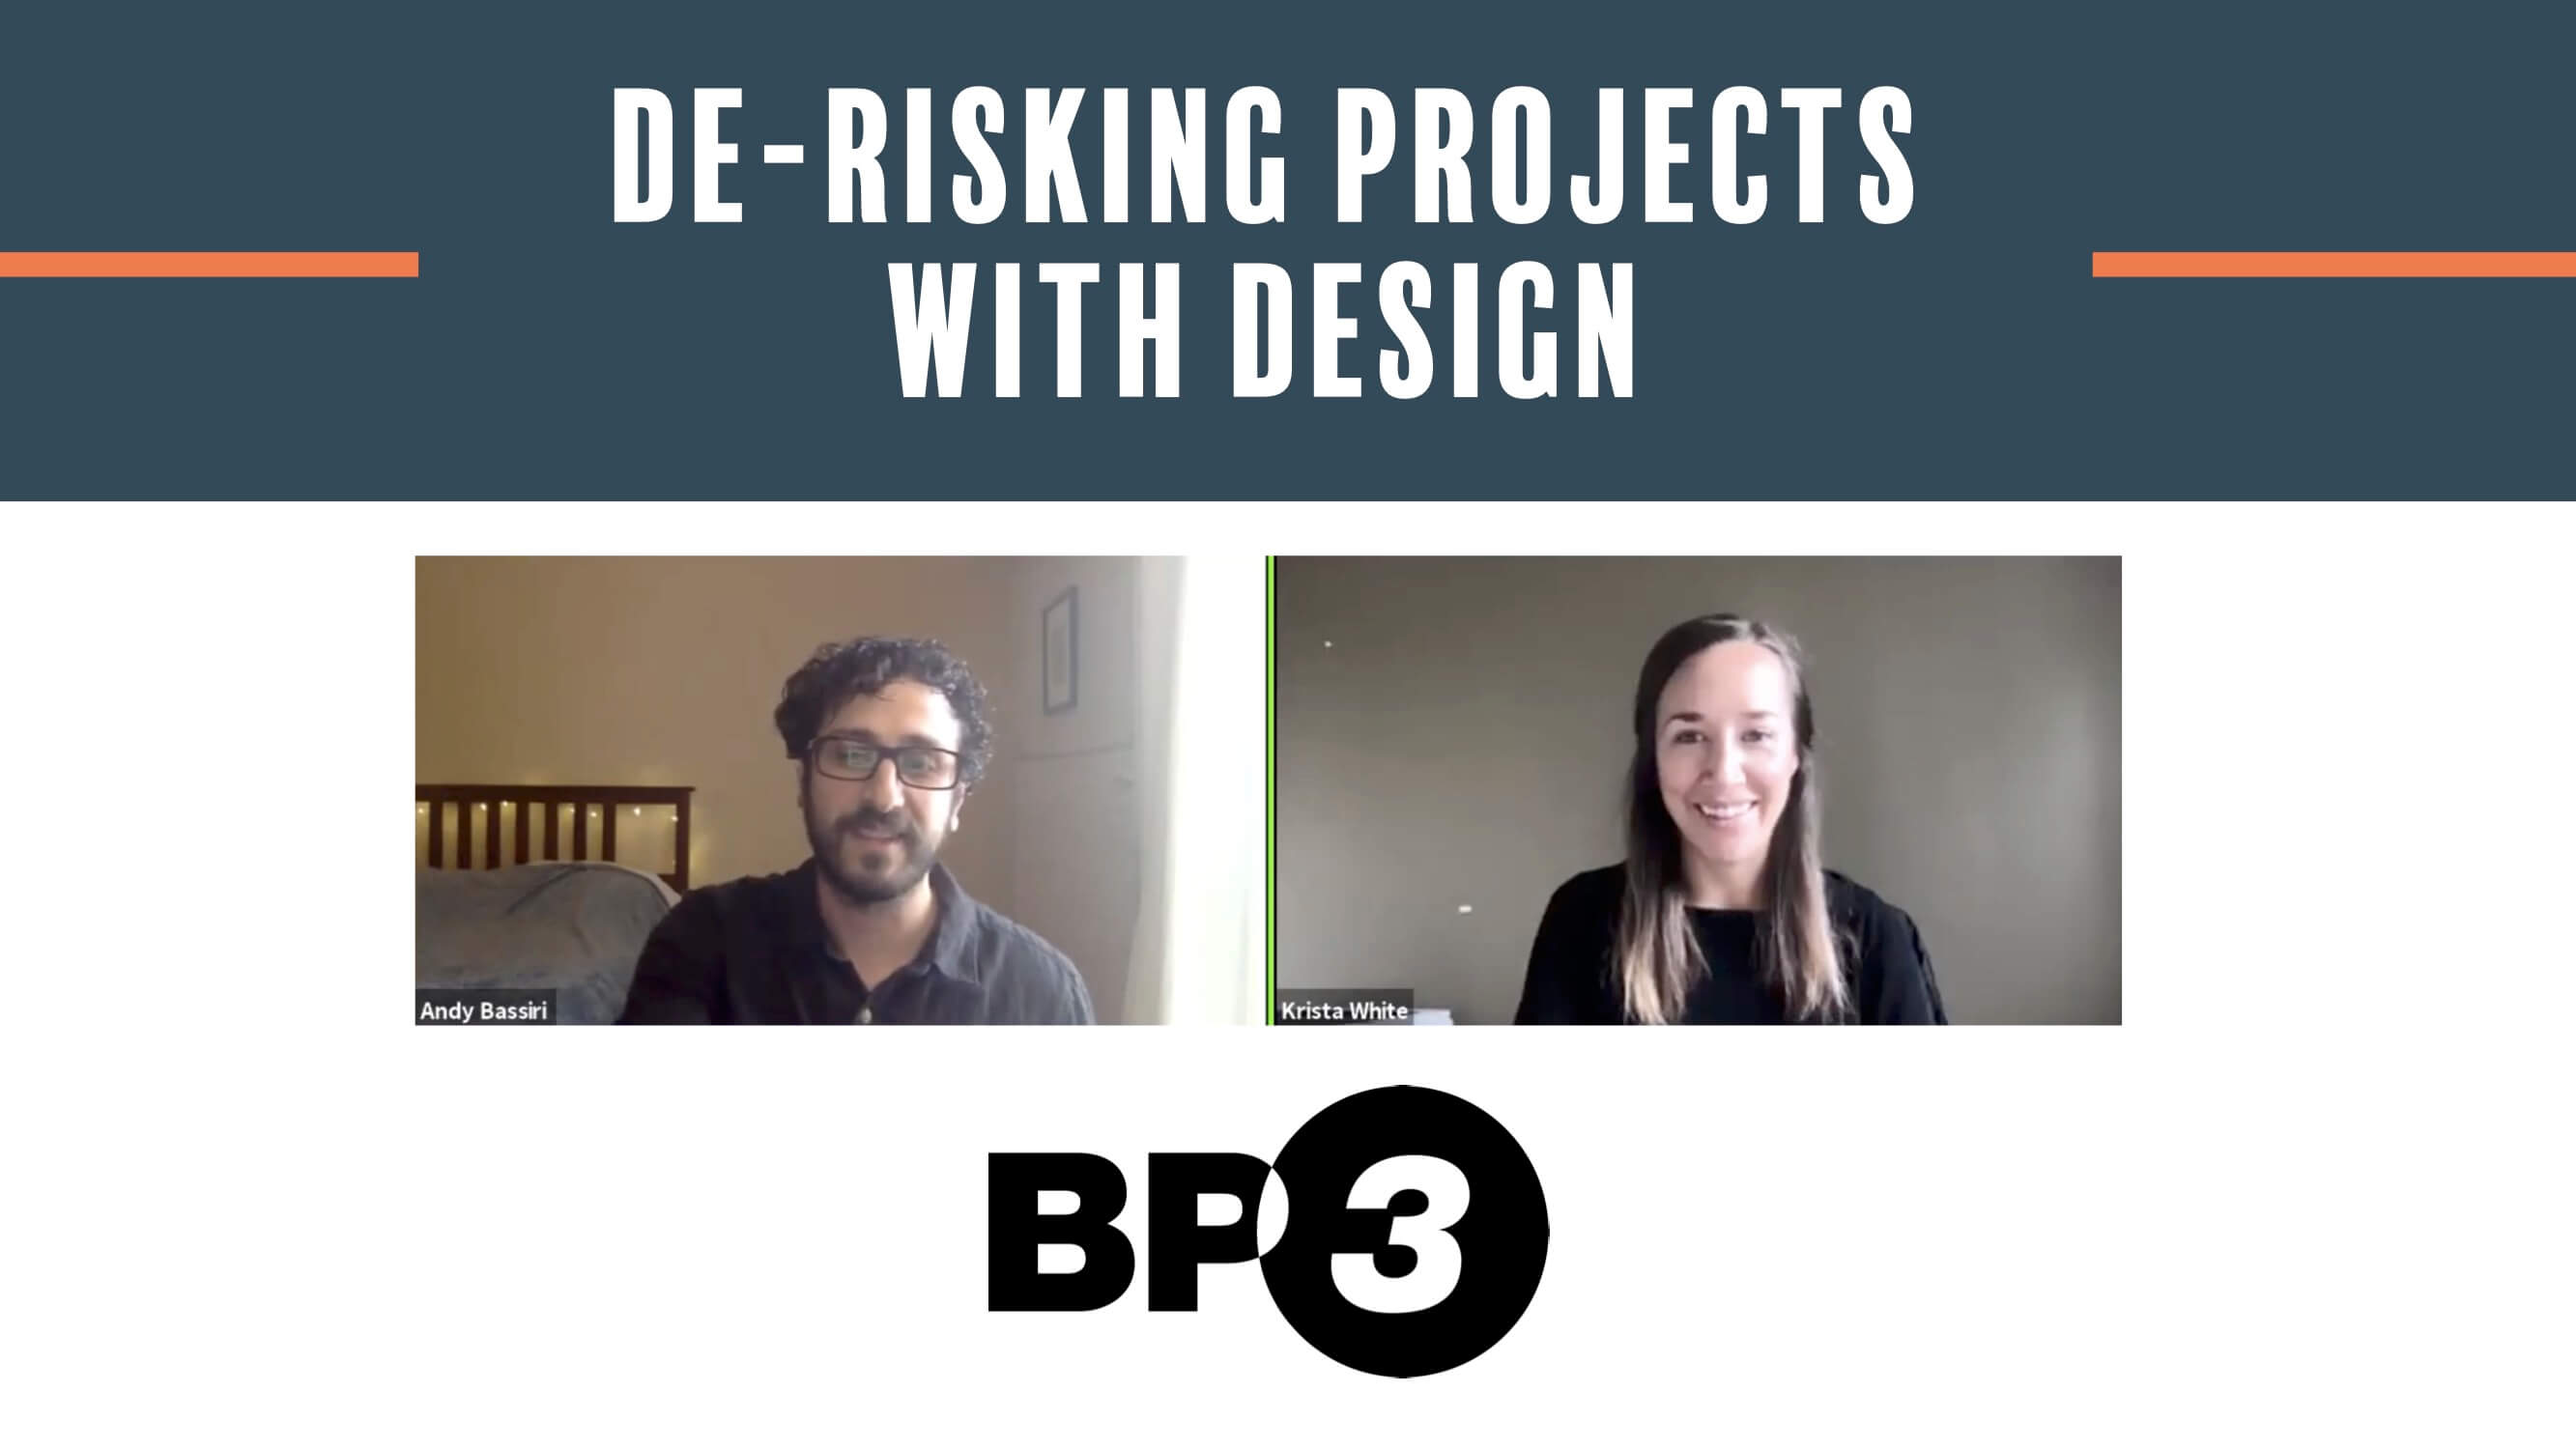 De-Risking Projects with Design